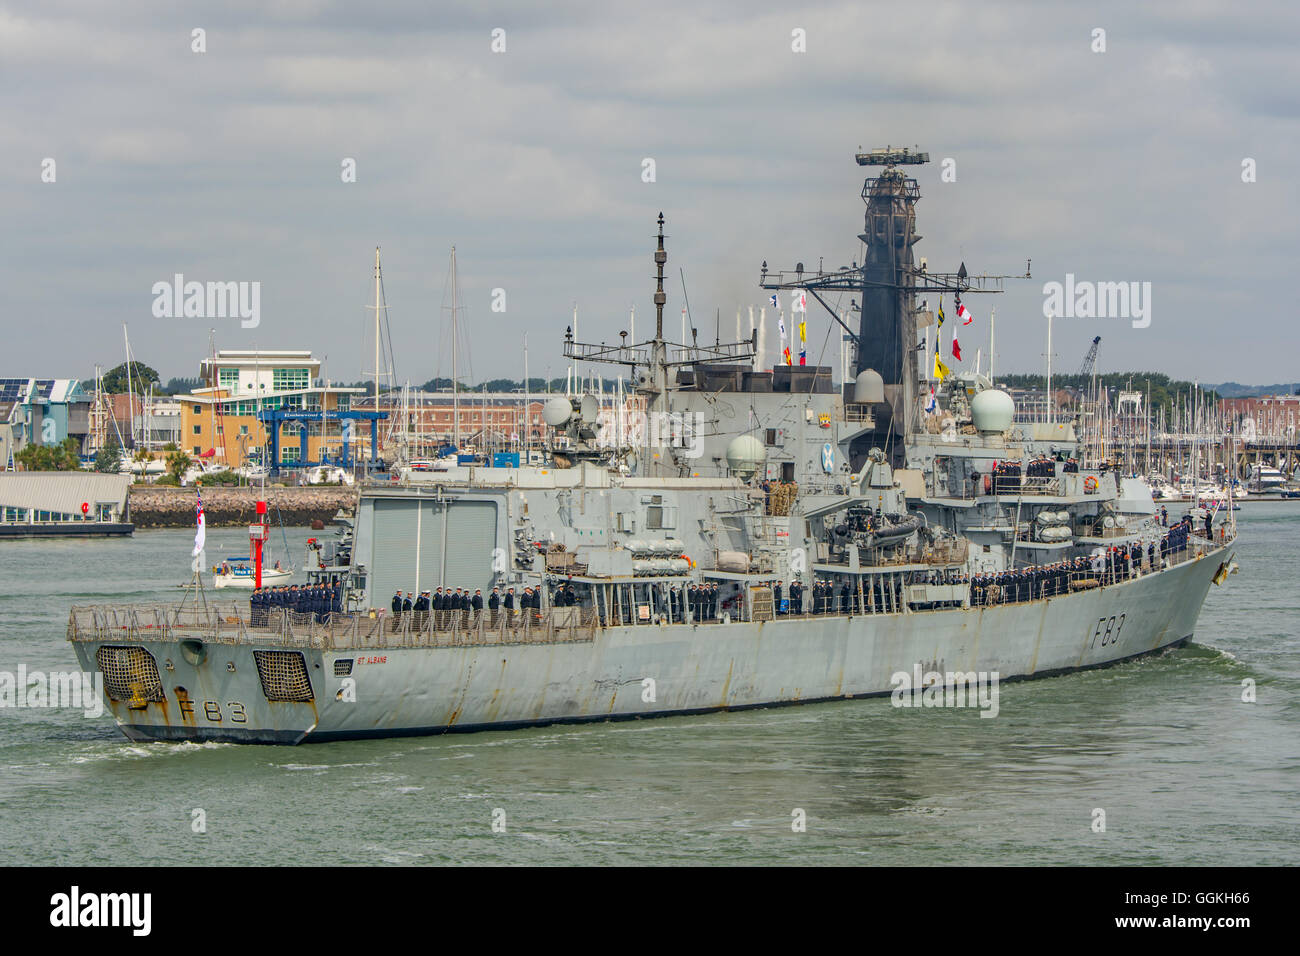 HMS St Albans (F83), returns to Portsmouth after Gulf deployment. - Stock Image